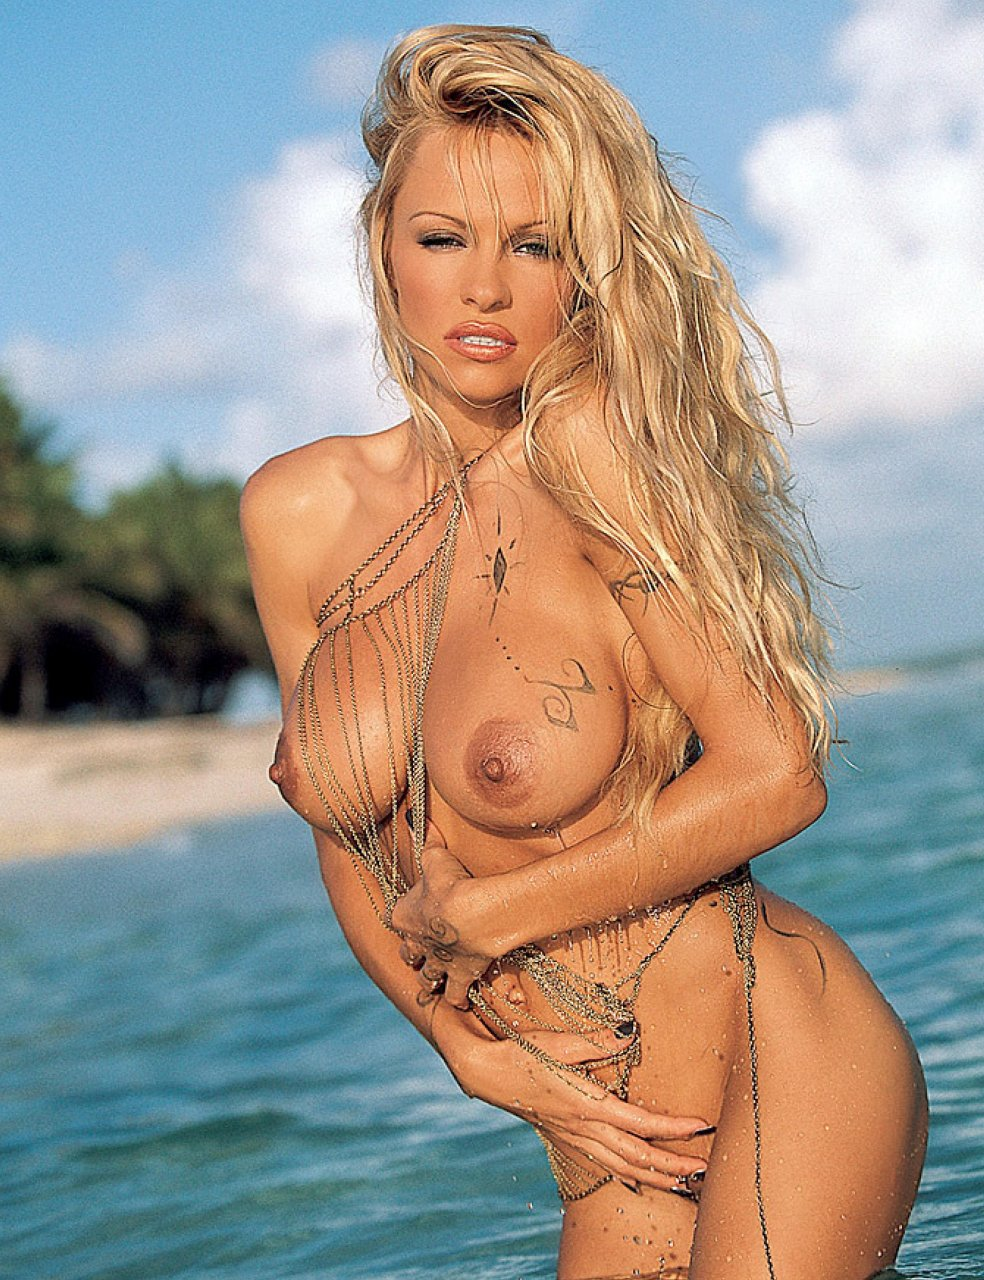 from Achilles pamela anderson hot sex nude